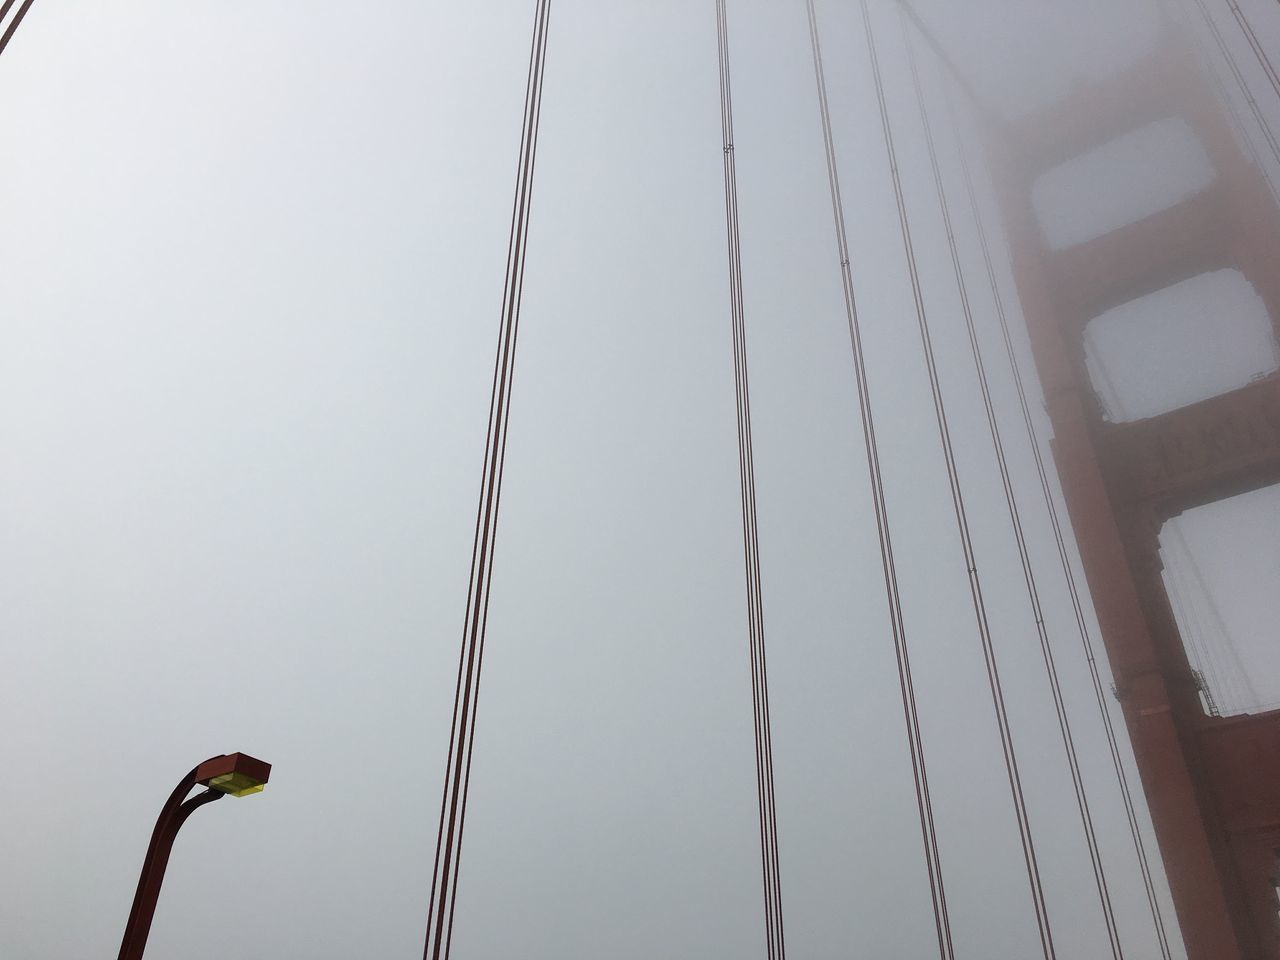 Architecture Day Foggy Golden Gate Bridge Low Angle View Outdoors Sky Technology